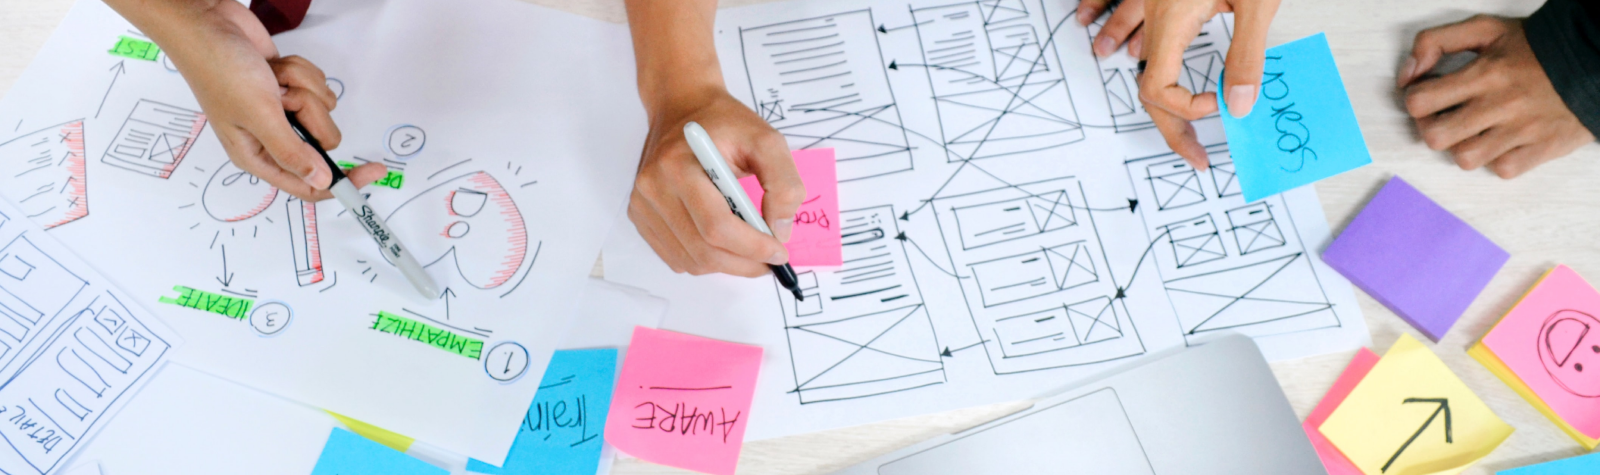 8 Readings to Guide Your Design Facilitation Journey